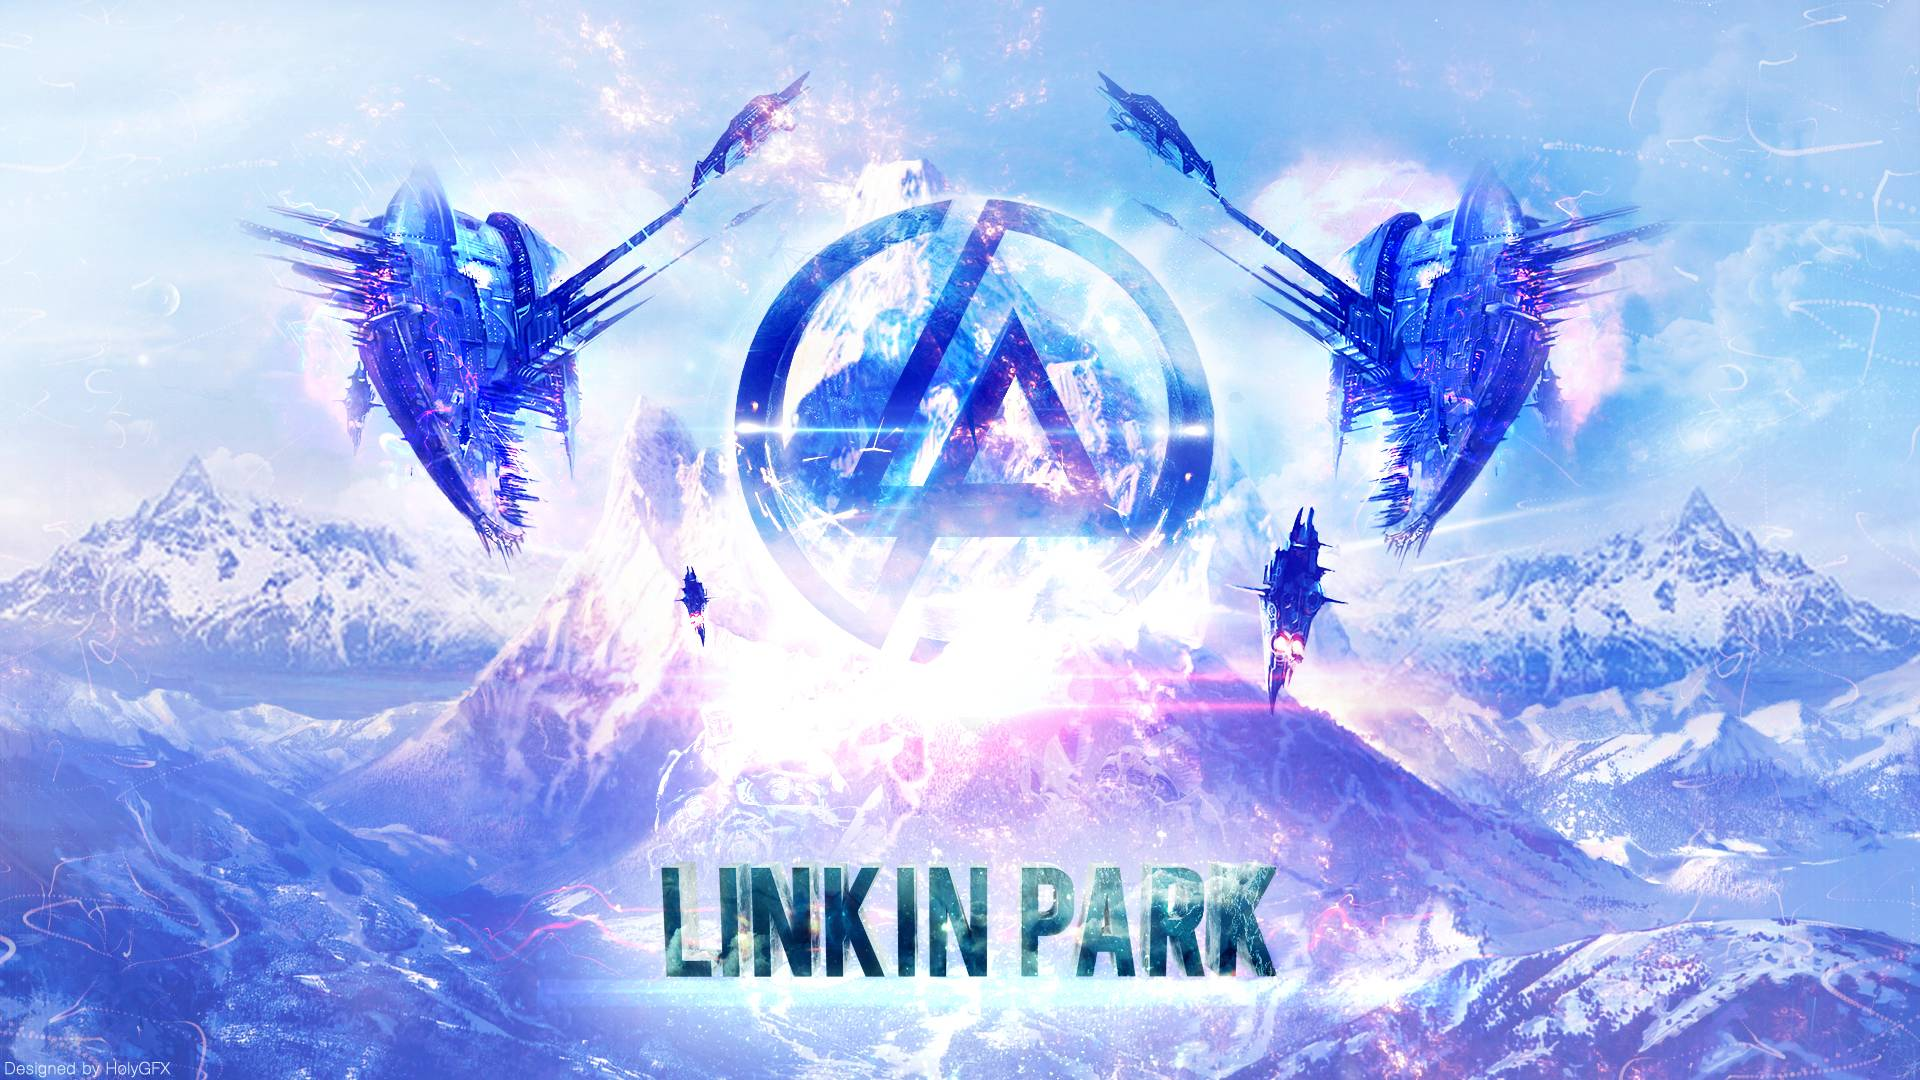 Linkin Park Wallpapers 2015